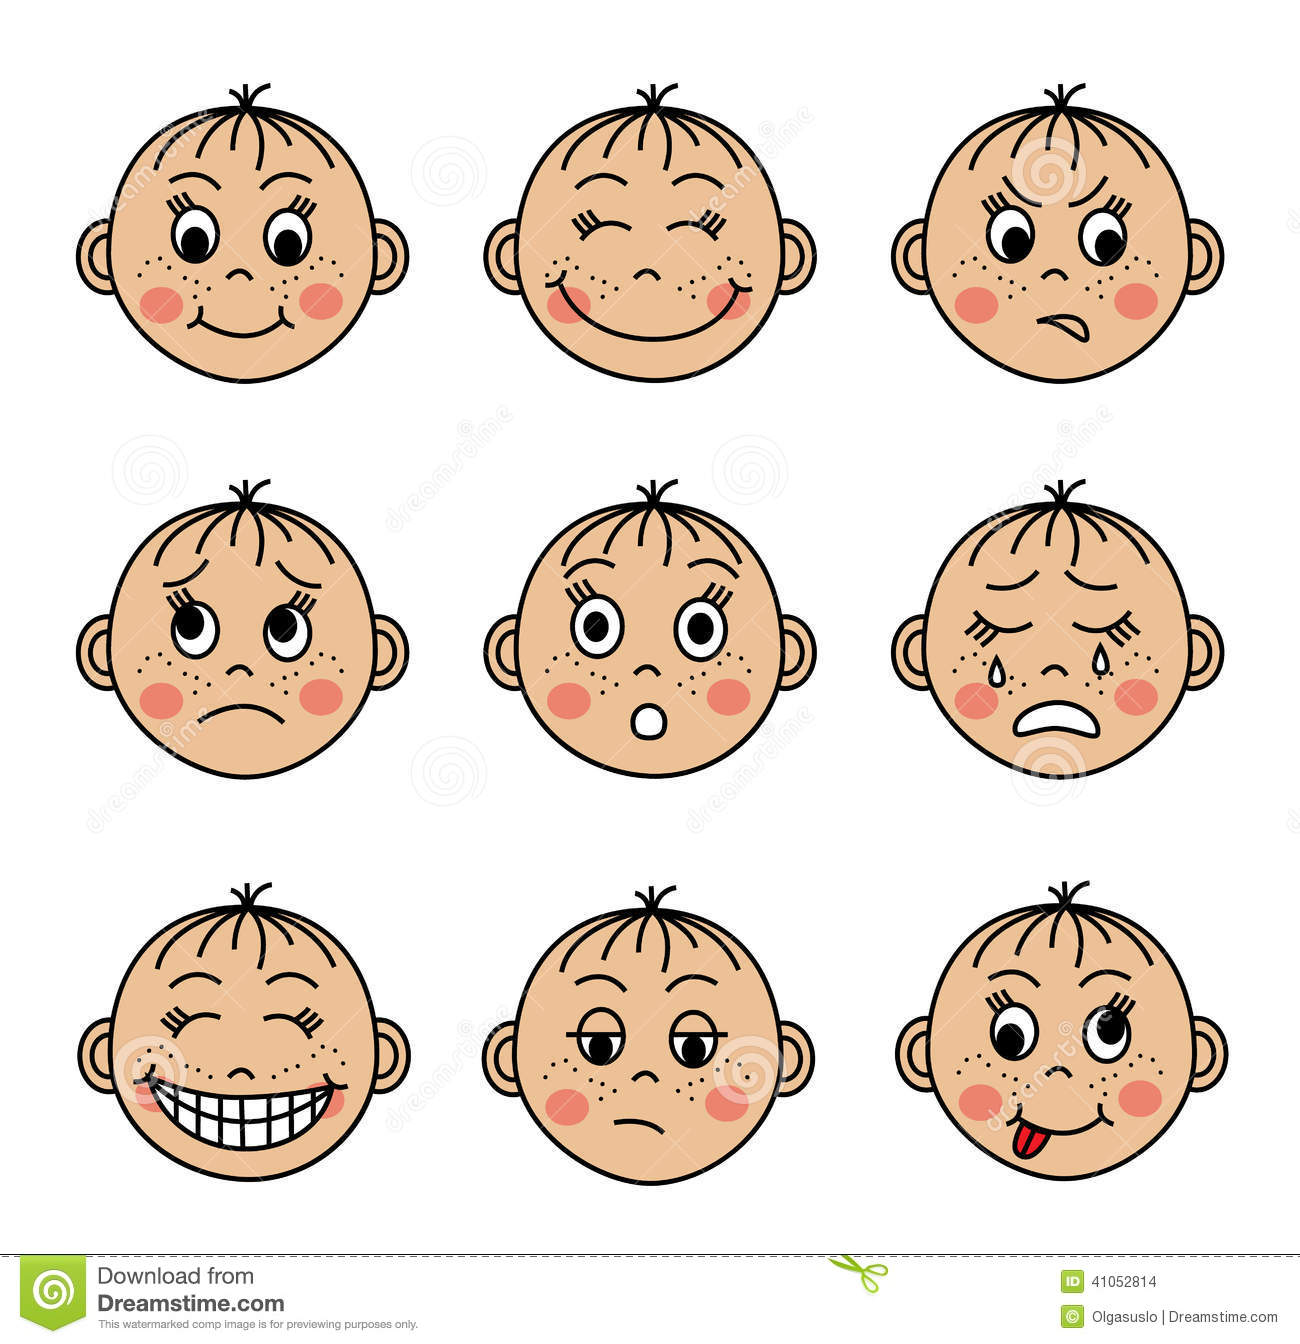 Emotions faces clipart 5 » Clipart Station.